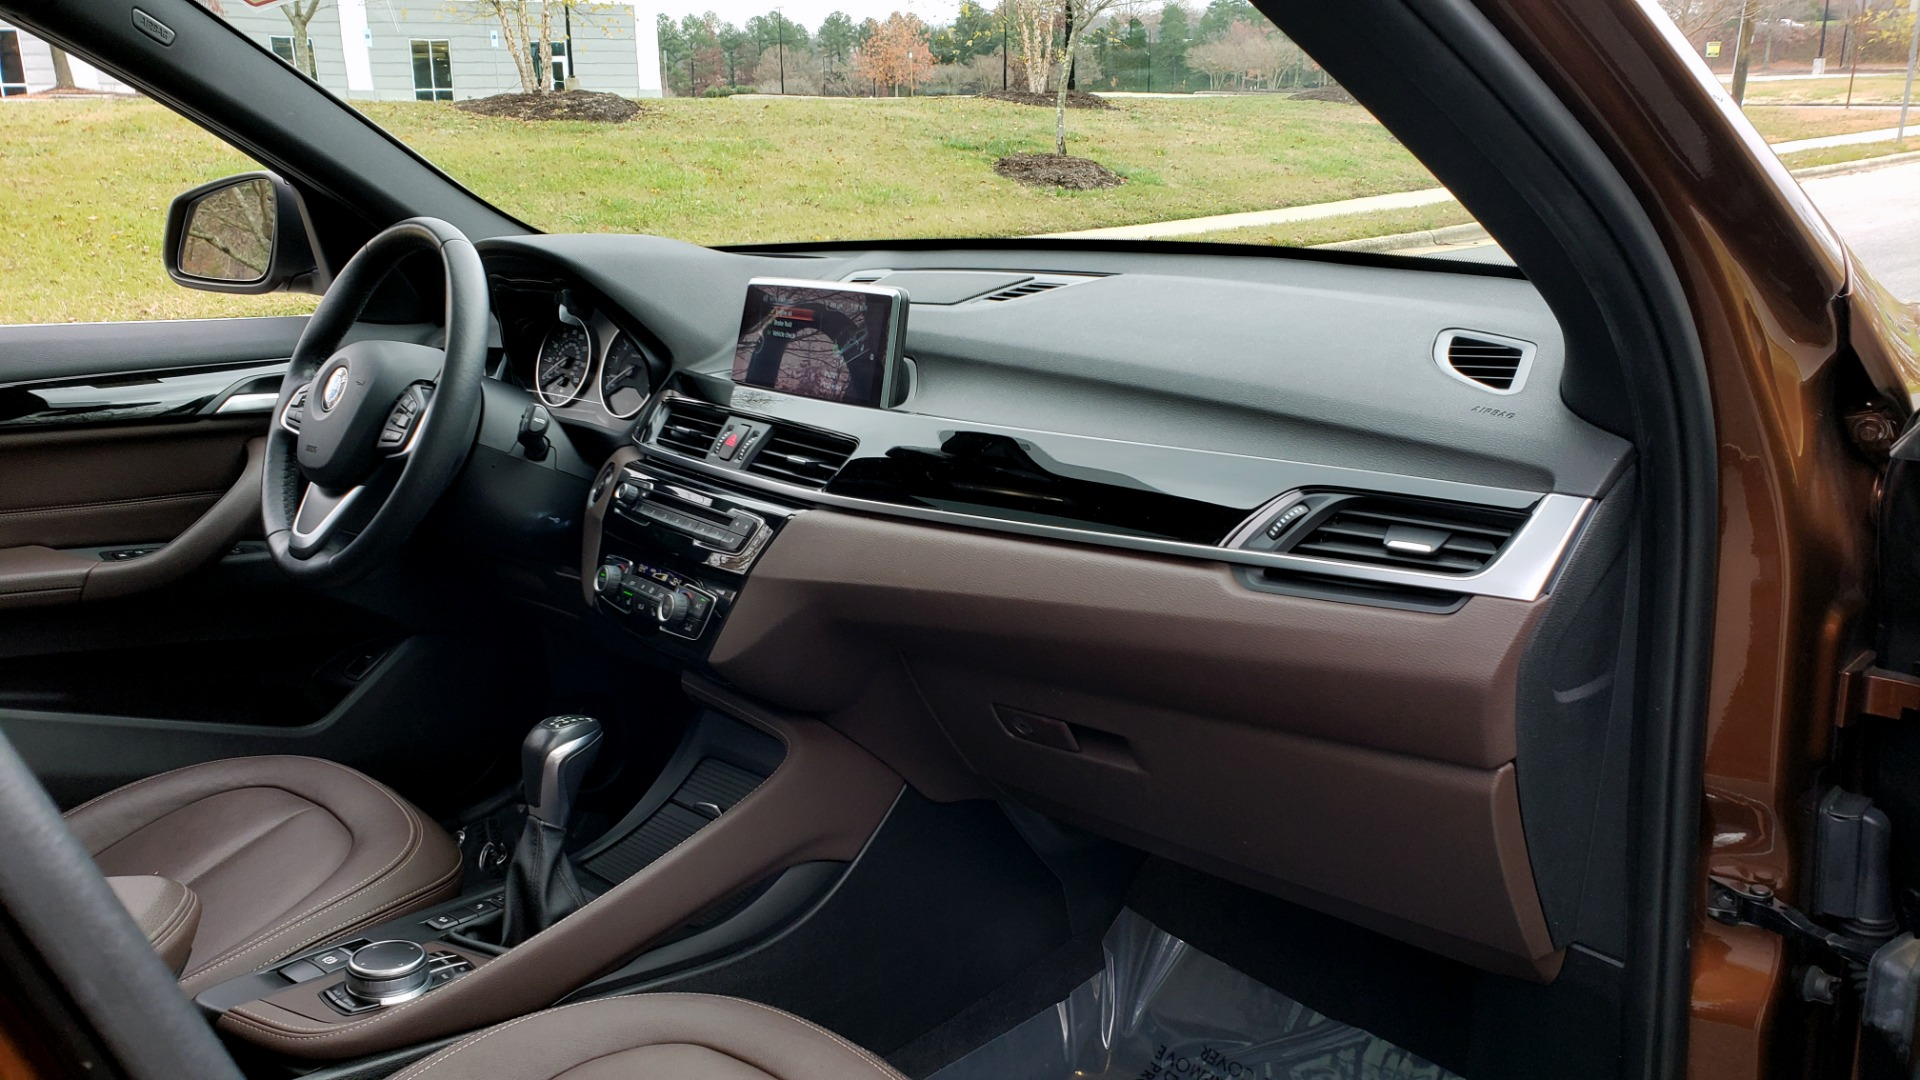 Used 2017 BMW X1 XDRIVE28I / PREM / TECH / DRVR ASST / COLD WTHR / REARVIEW for sale Sold at Formula Imports in Charlotte NC 28227 67